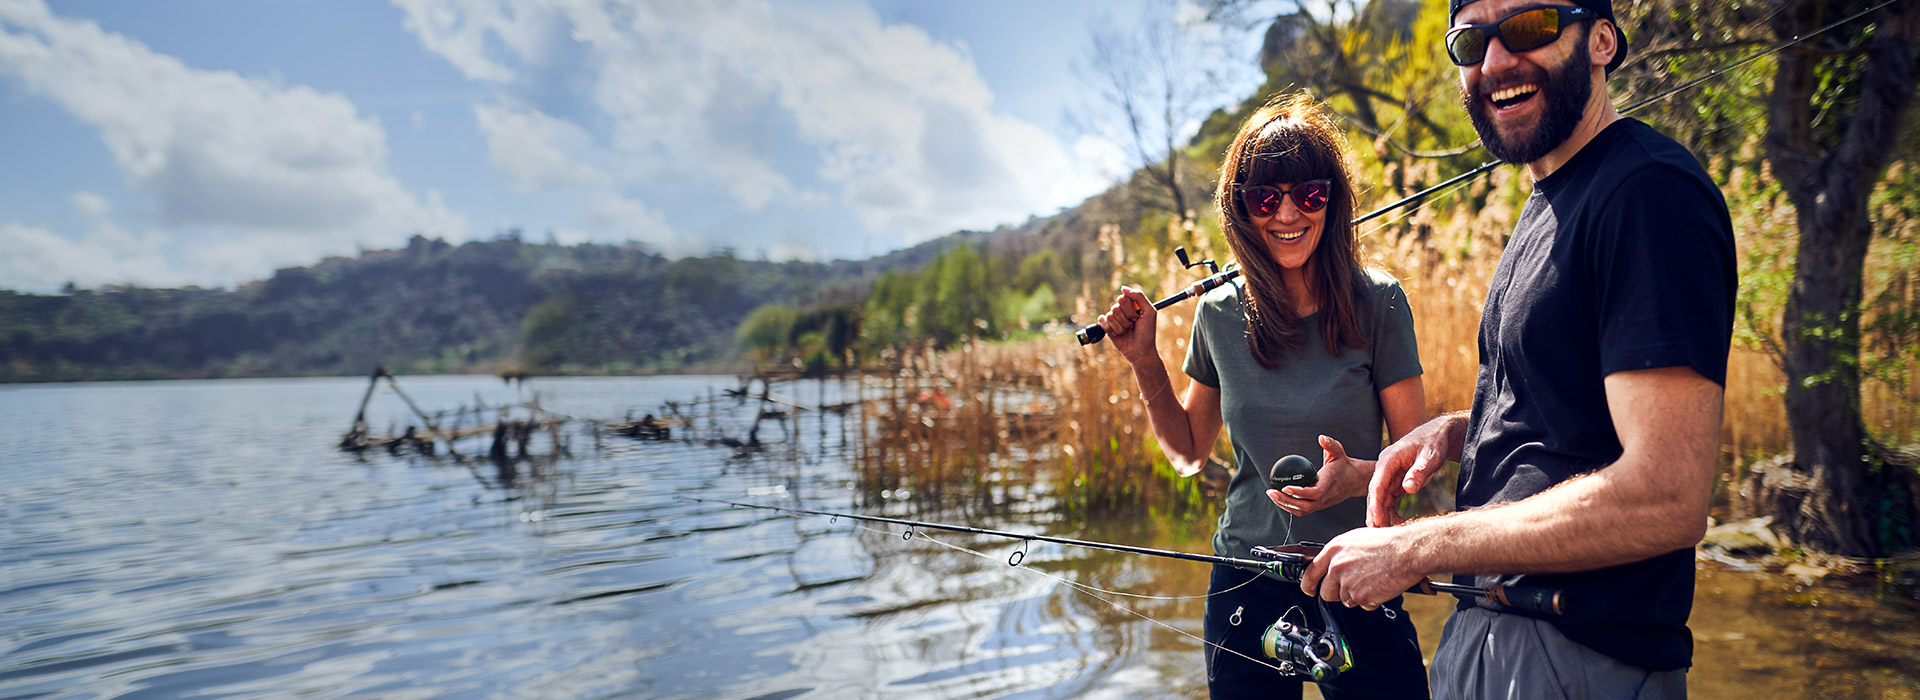 Grab your rods and enjoy local nature!Deeper sonar from $189.99